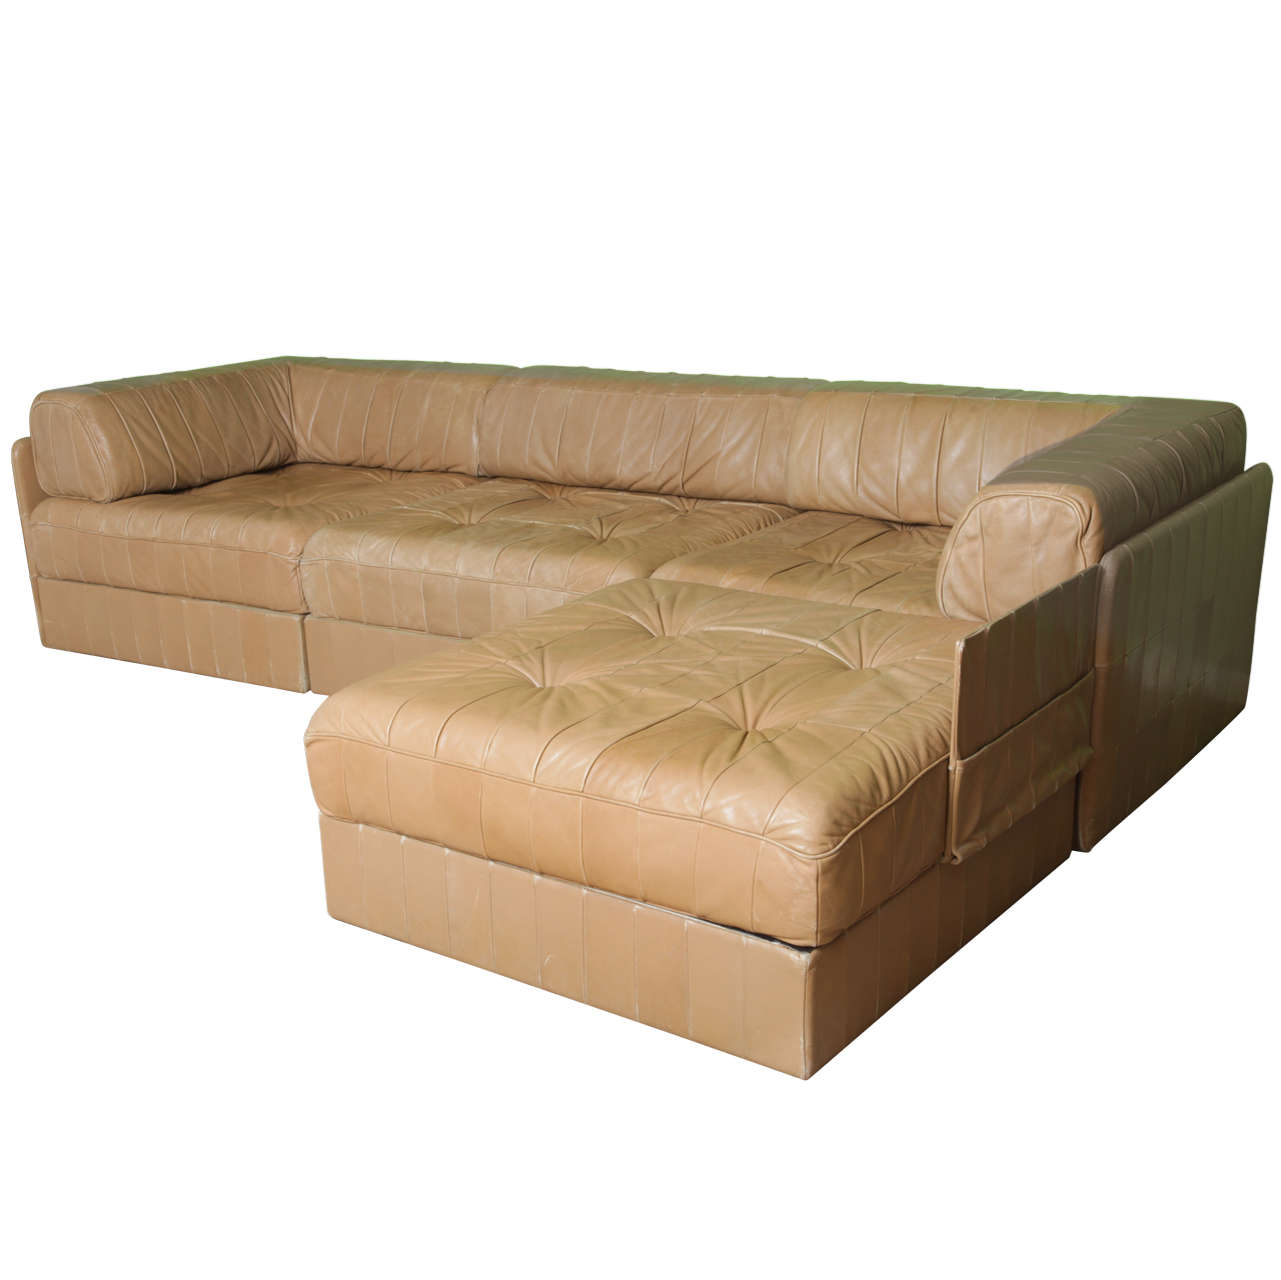 Leather cognac de sede comfortable living room set 39 70 39 s for 70s living room furniture